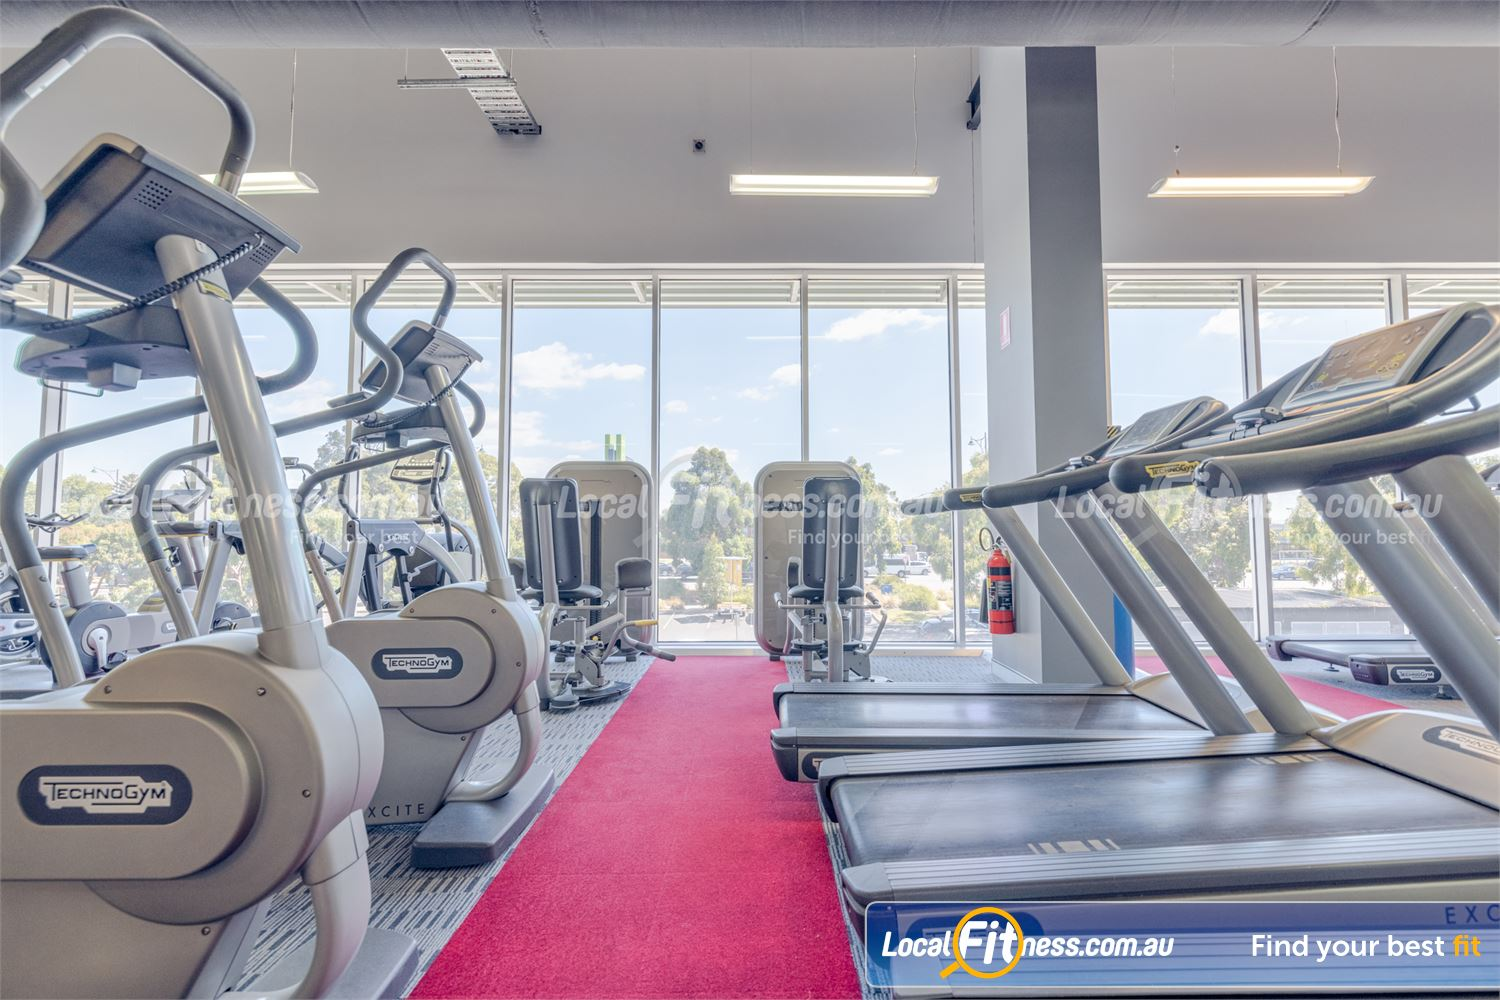 Element Fitness Health Club Near Vermont South Scenic light-filled views from our cardio area.